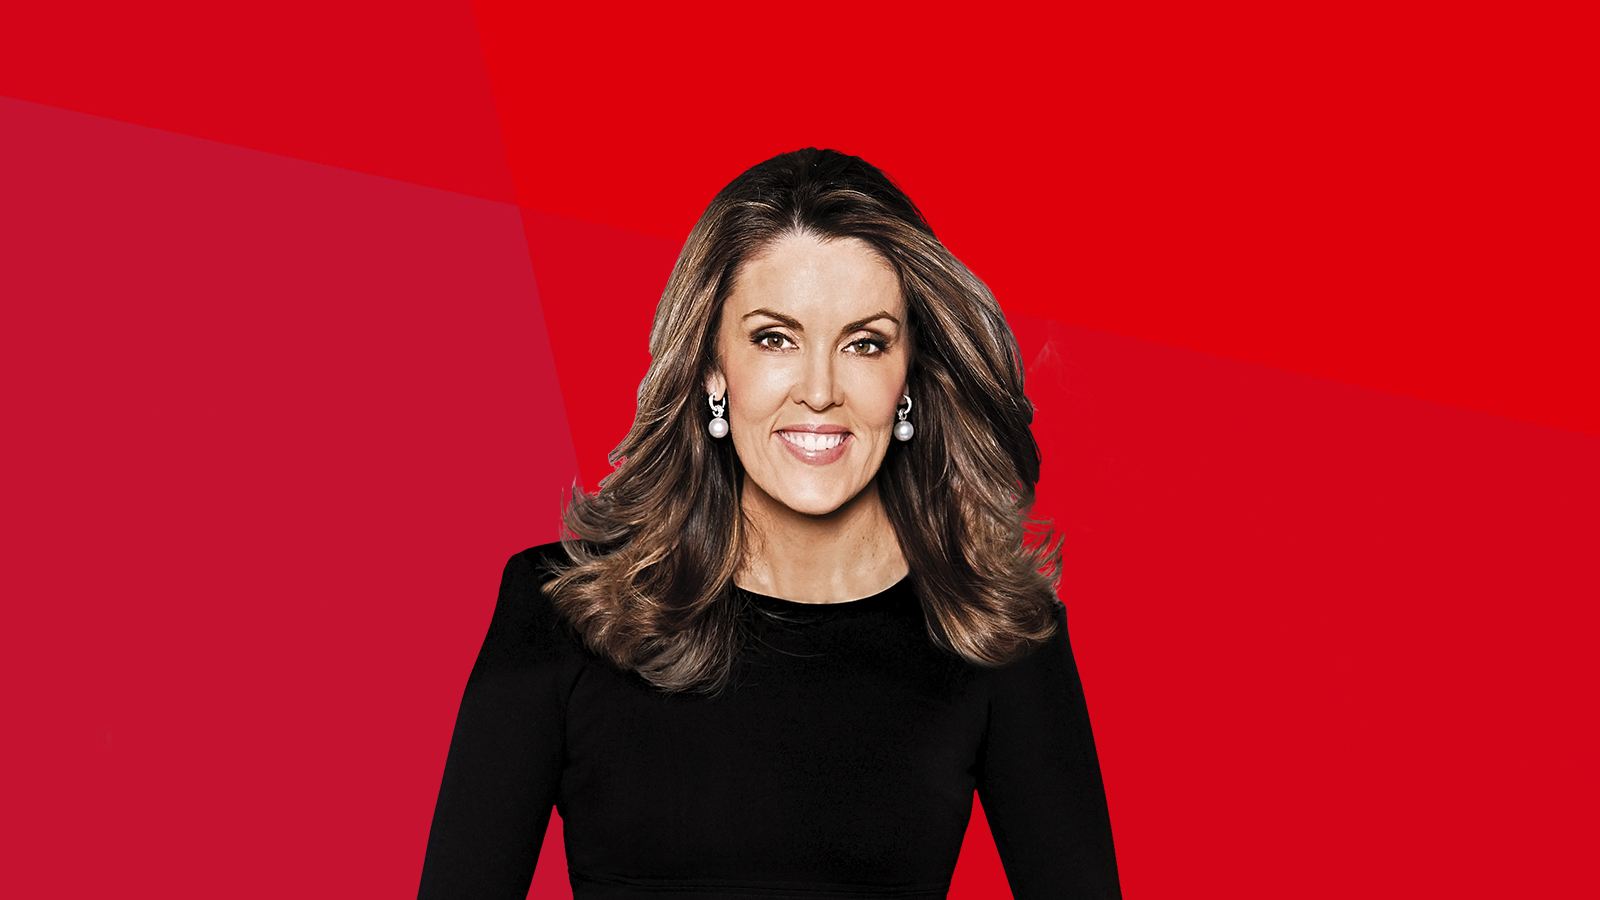 Peta Credlin on the election results